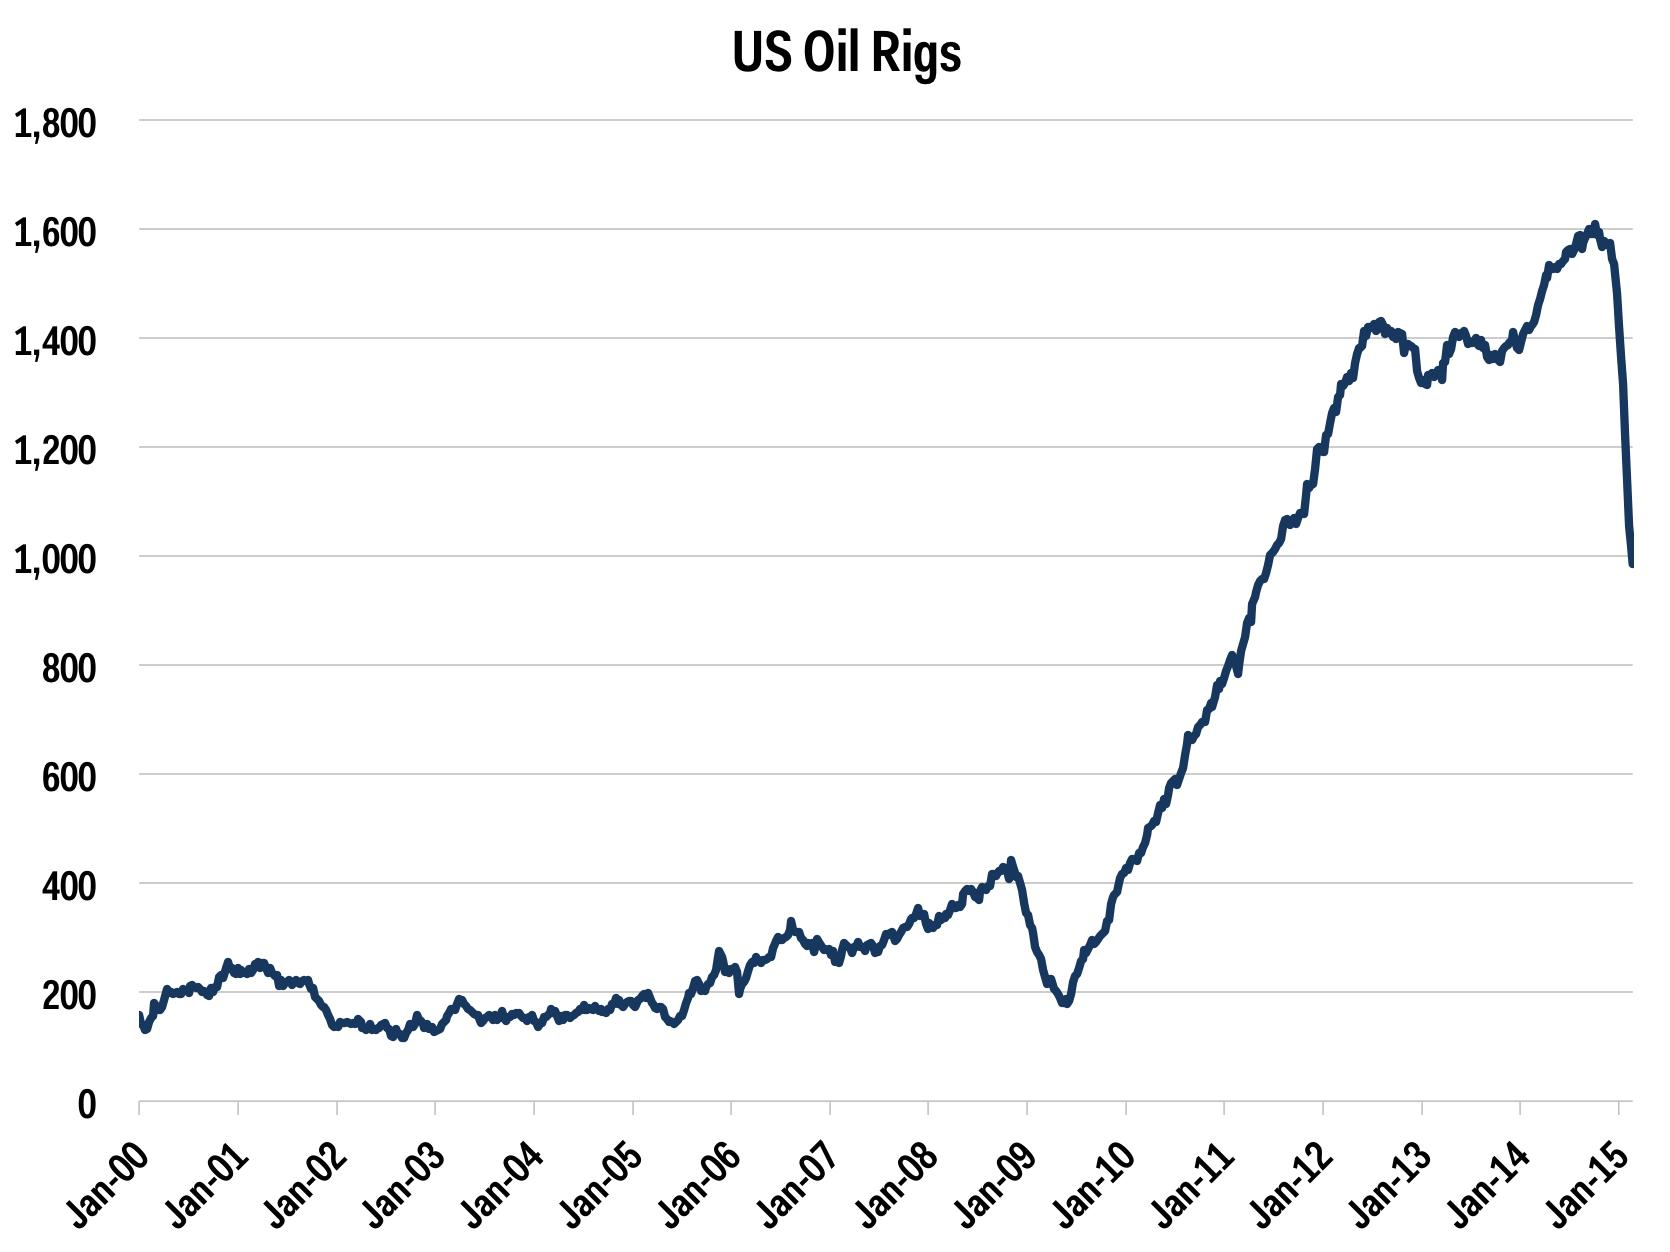 US oil rig count plunges to lowest since June 2011